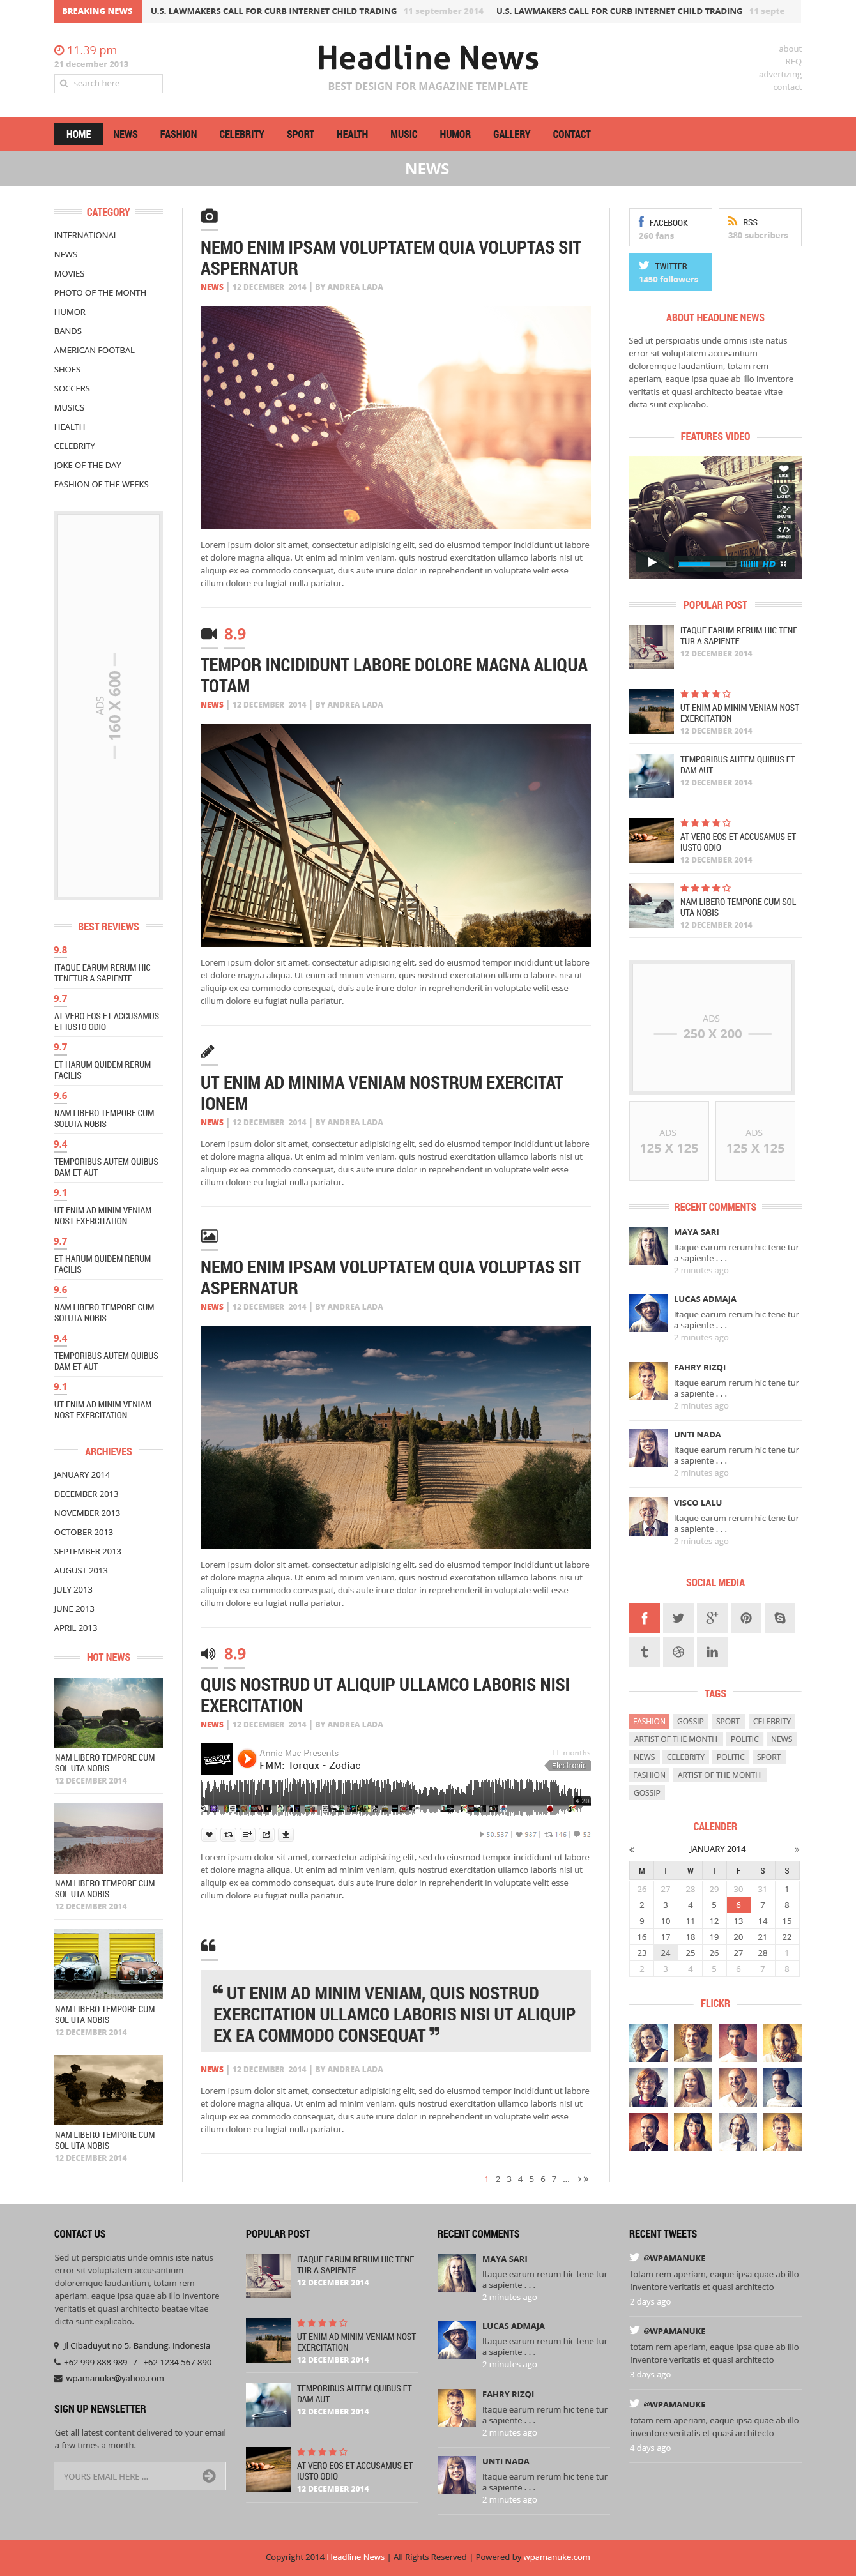 Headline News Magazine Psd Template By Wpamanuke Themeforest